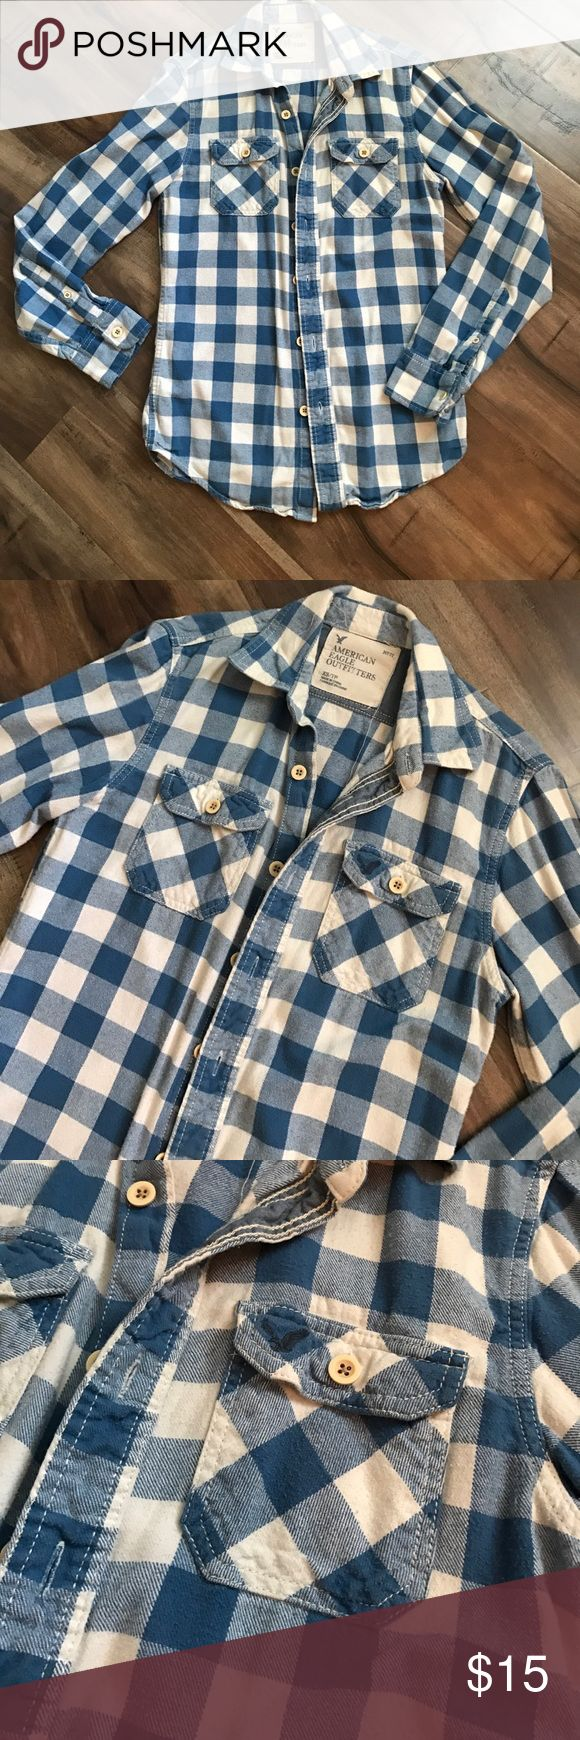 Men's American Eagle shirt Gently used American Eagle men's blue and off-white button up. American Eagle Outfitters Shirts Casual Button Down Shirts